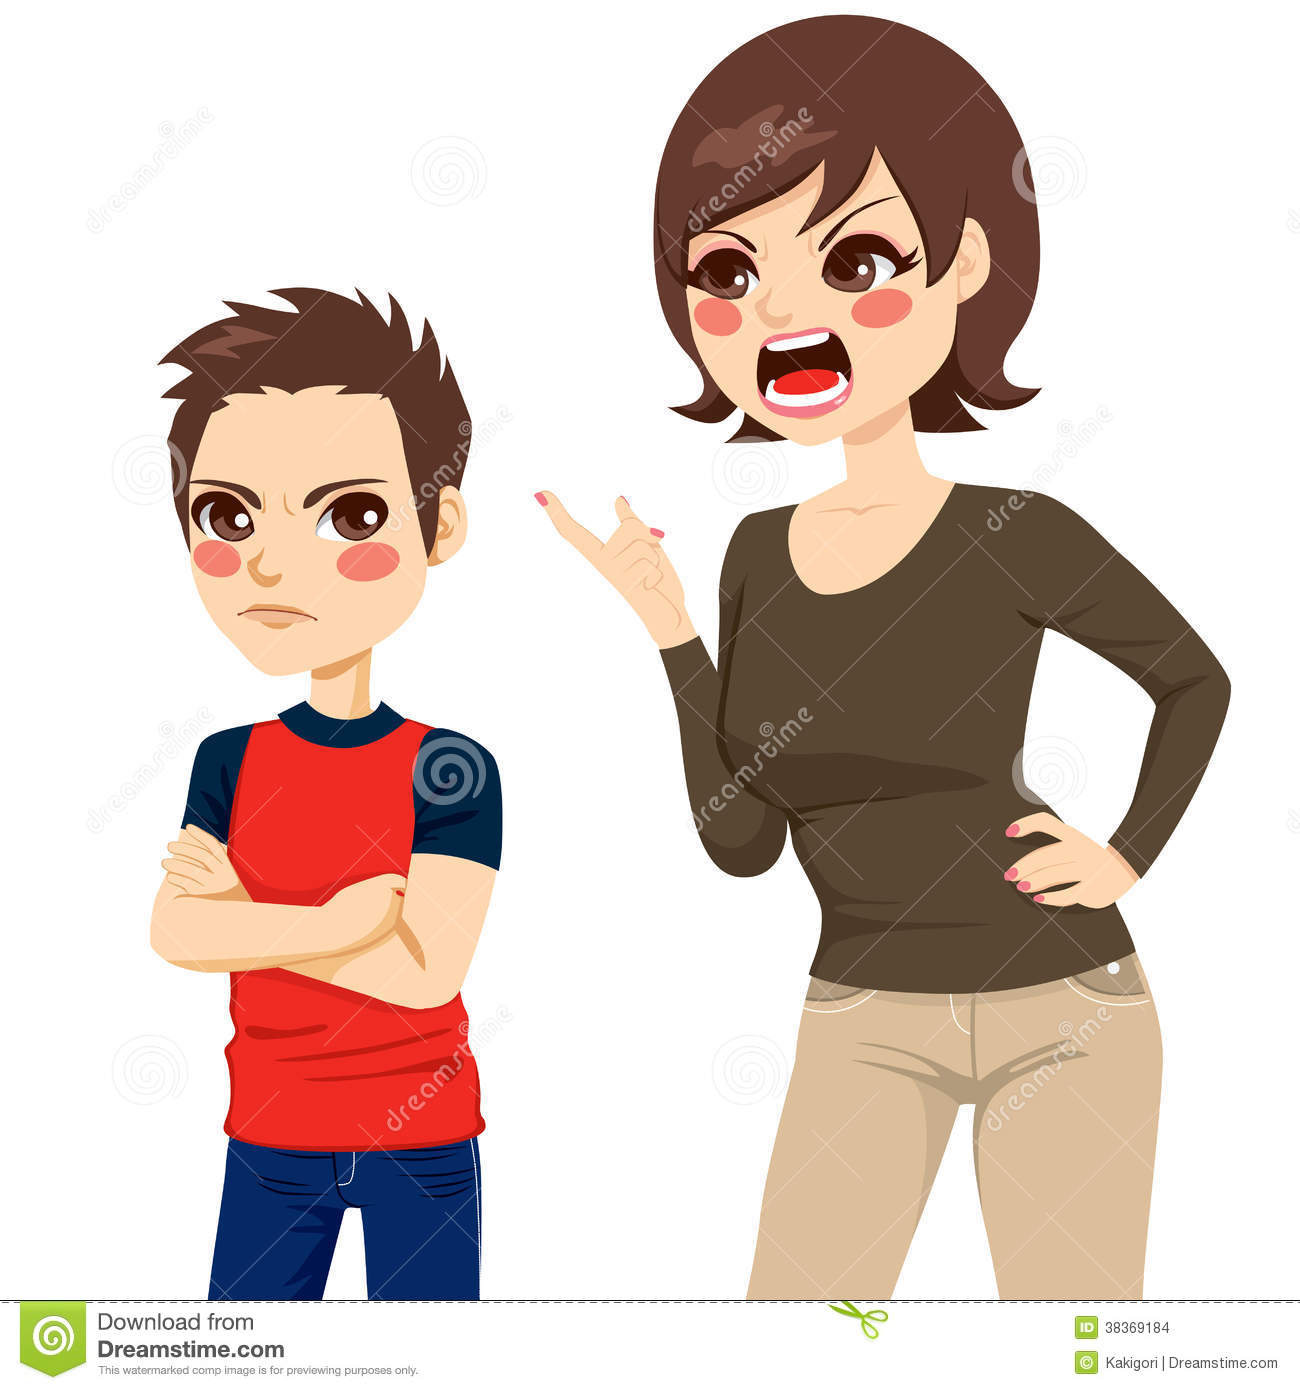 Mom Scolding Child Clipart.